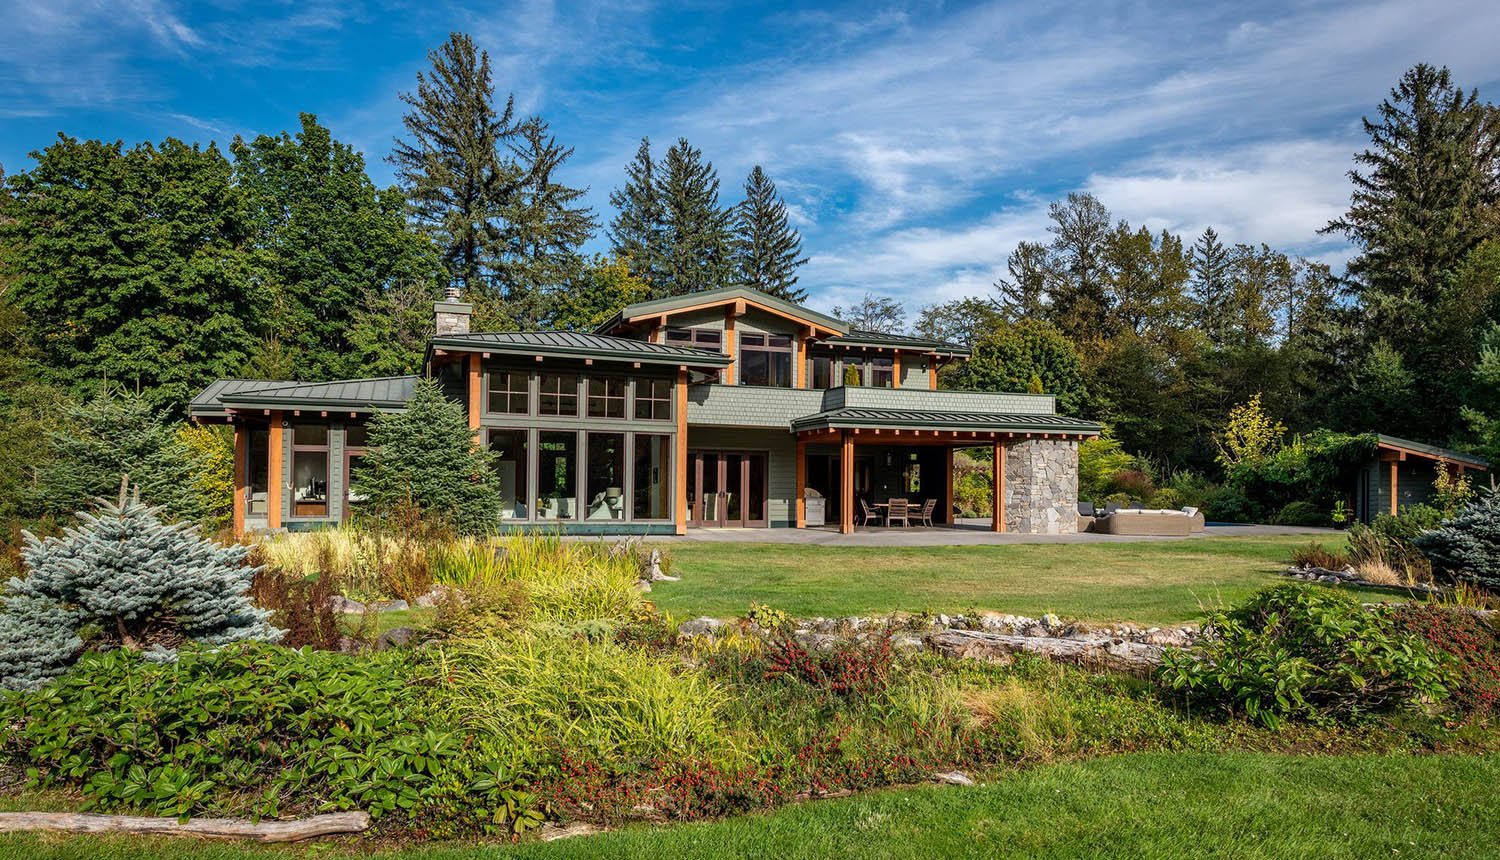 green colored house with wood trim and stone veneer in nature